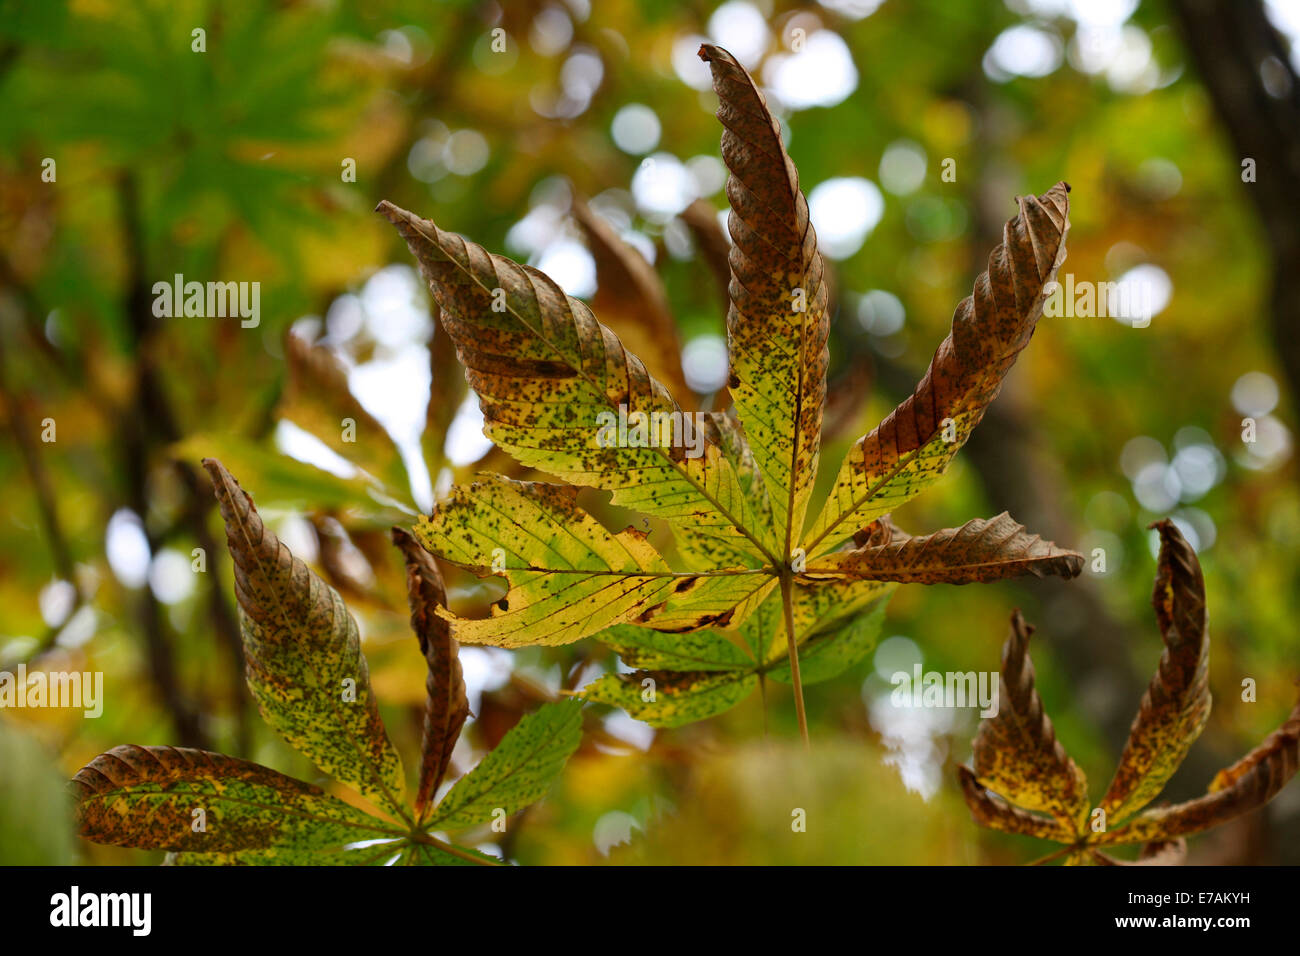 chestnut tree autumn stockfotos chestnut tree autumn bilder alamy. Black Bedroom Furniture Sets. Home Design Ideas